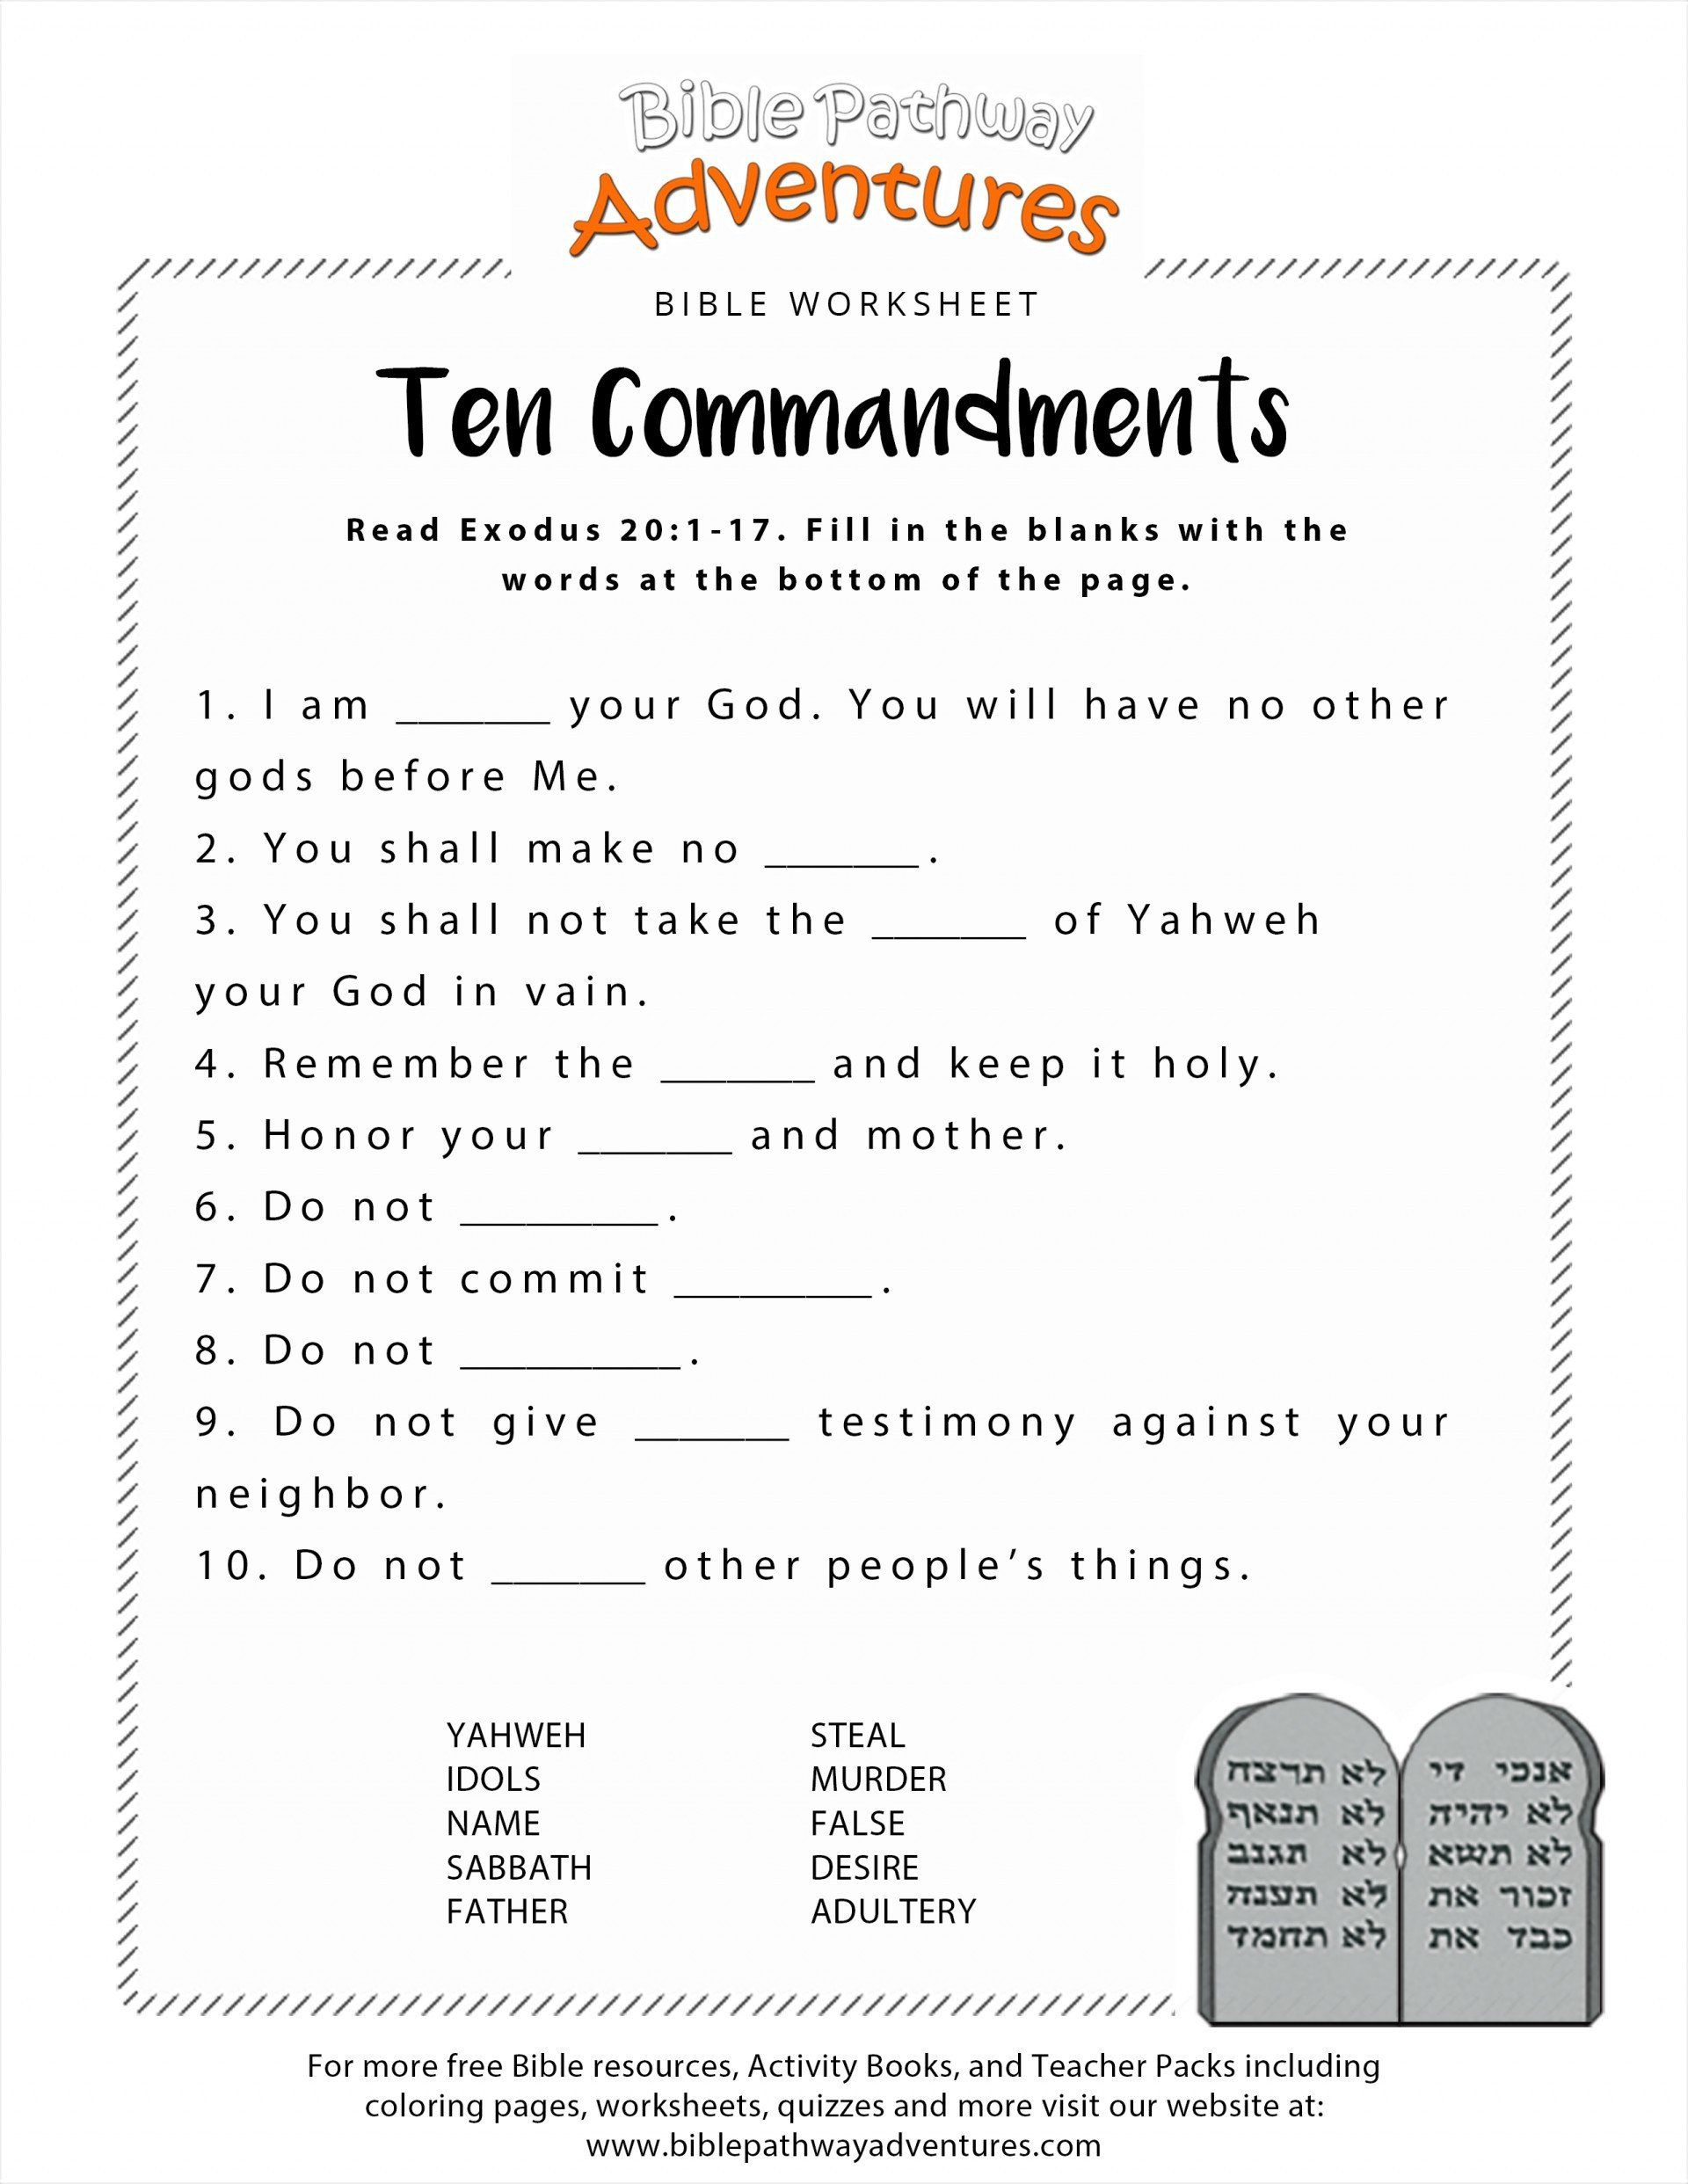 Ten Commandments Coloring Pages Beautiful 040 Mandments